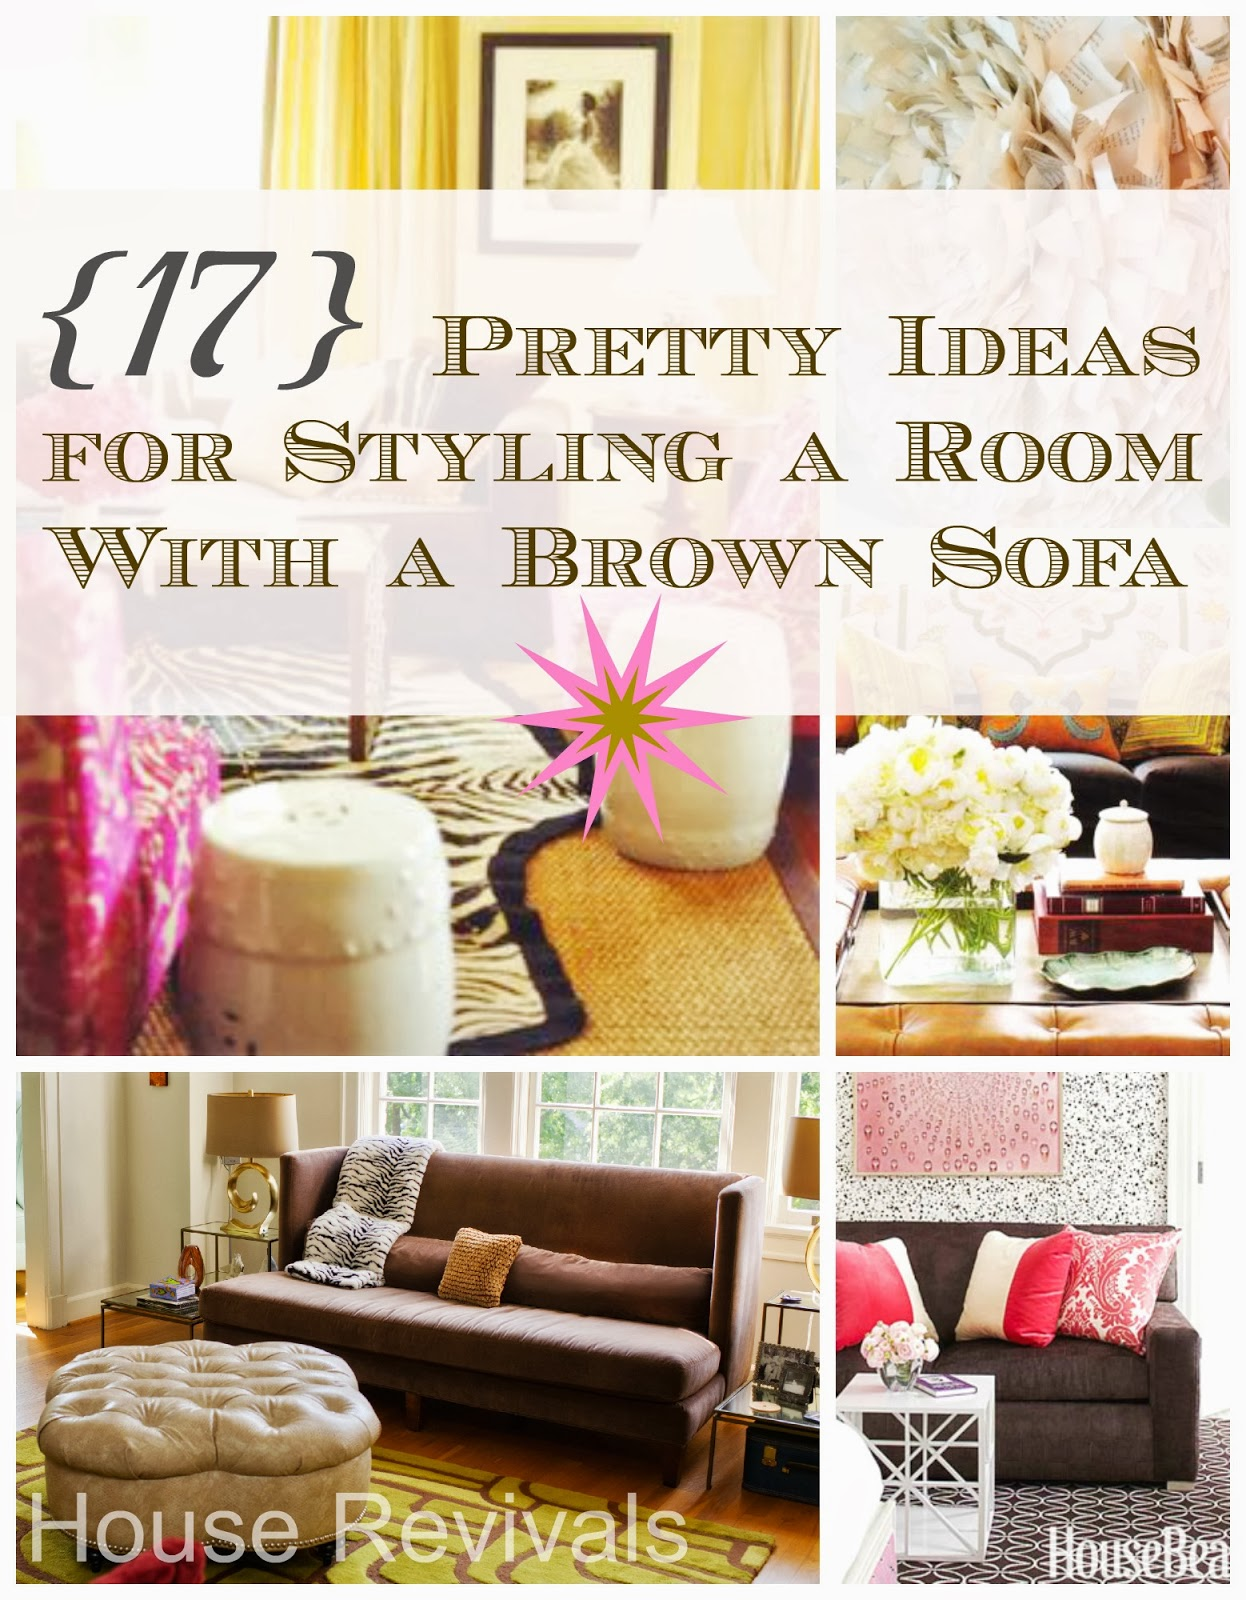 Living Room Ideas Brown Furniture house revivals: 17 pretty ways to decorate with a brown sofa